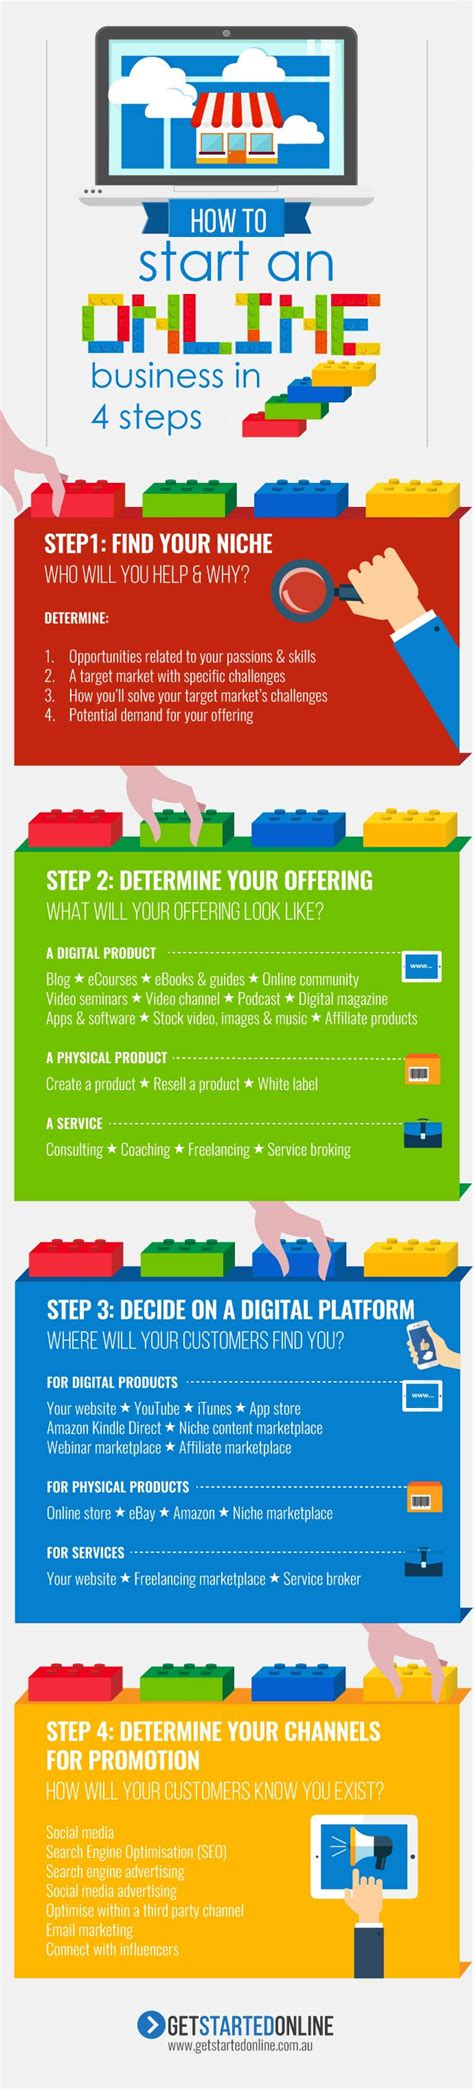 5 simple steps to start 200 day profit how to start an business in 4 steps infographic